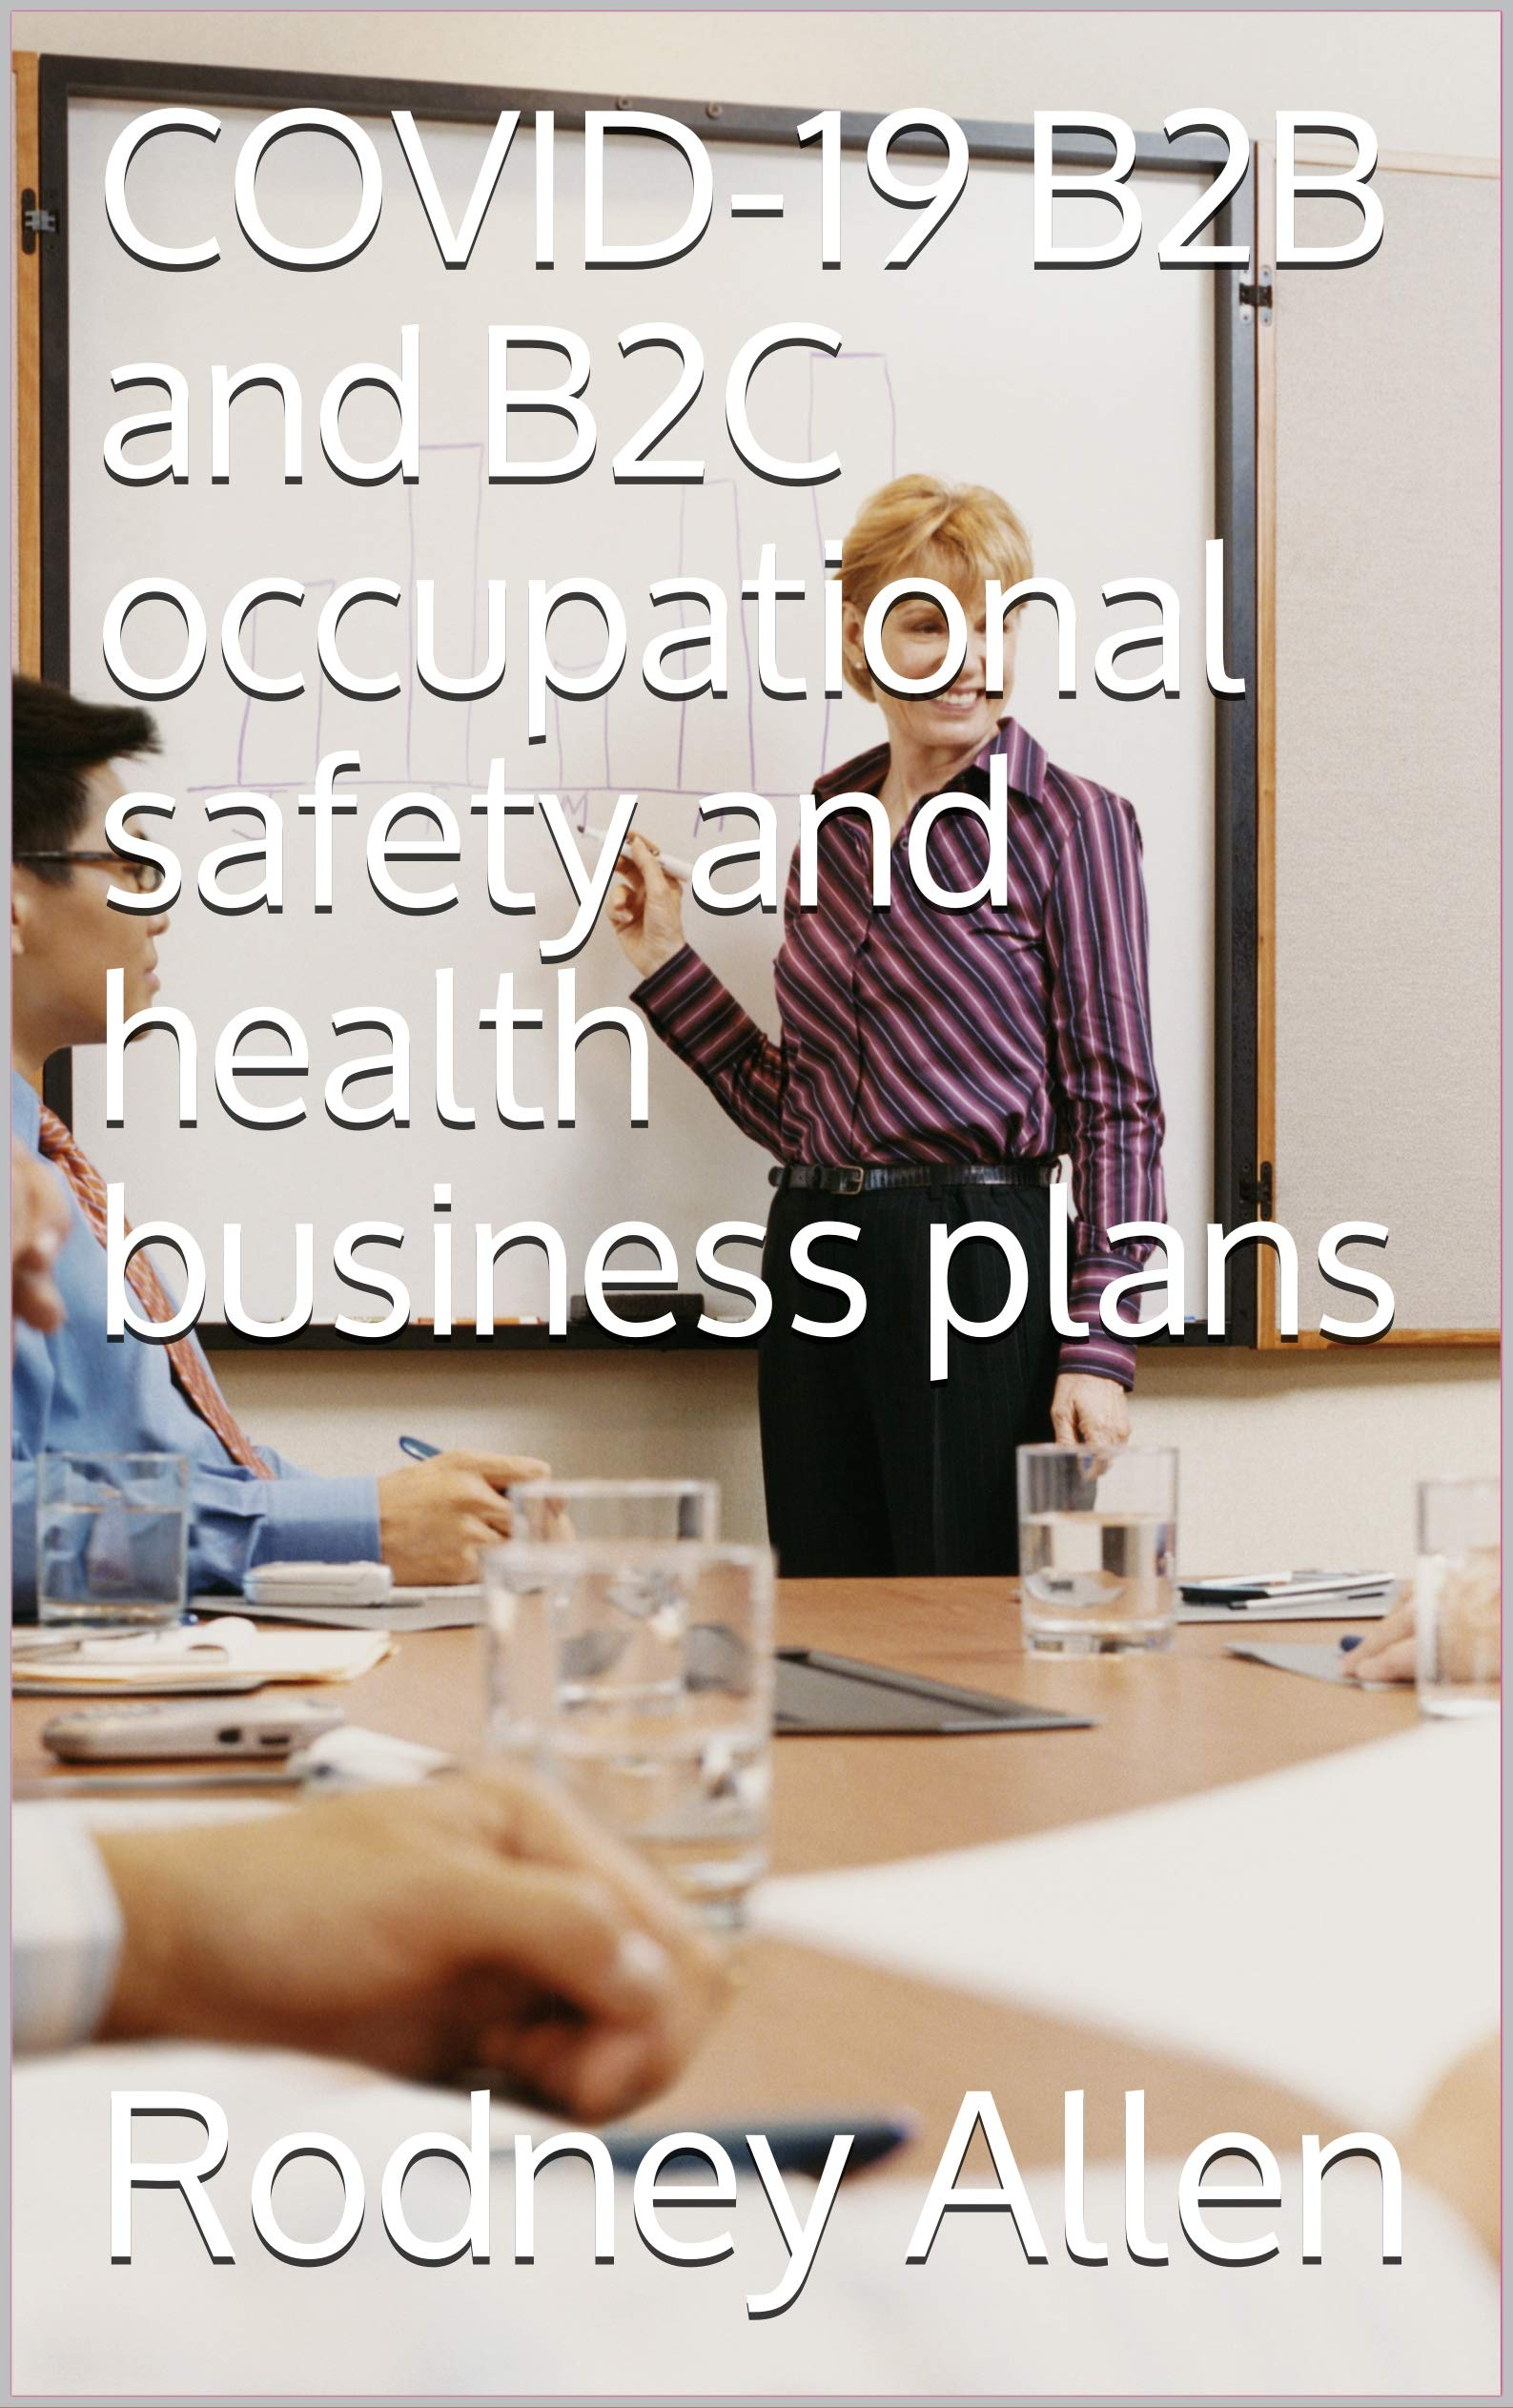 COVID-19 B2B and B2C occupational safety and health business plans